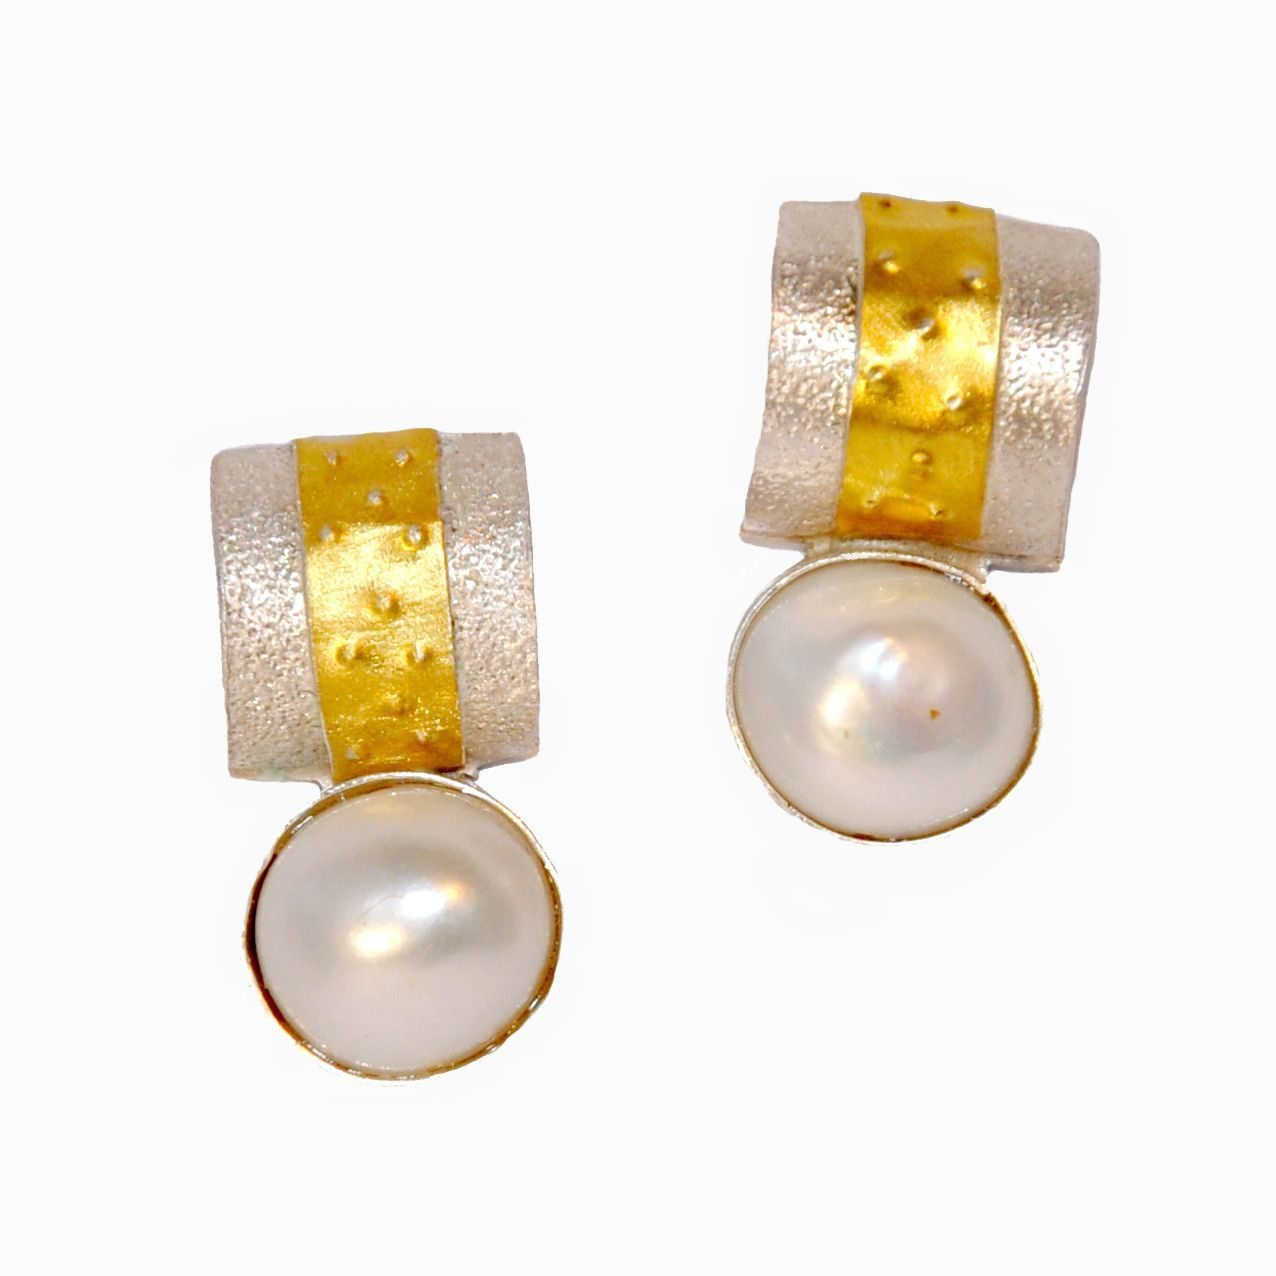 22Kt Gold Sterling Silver and Pearl Barrel Earrings by Shellie